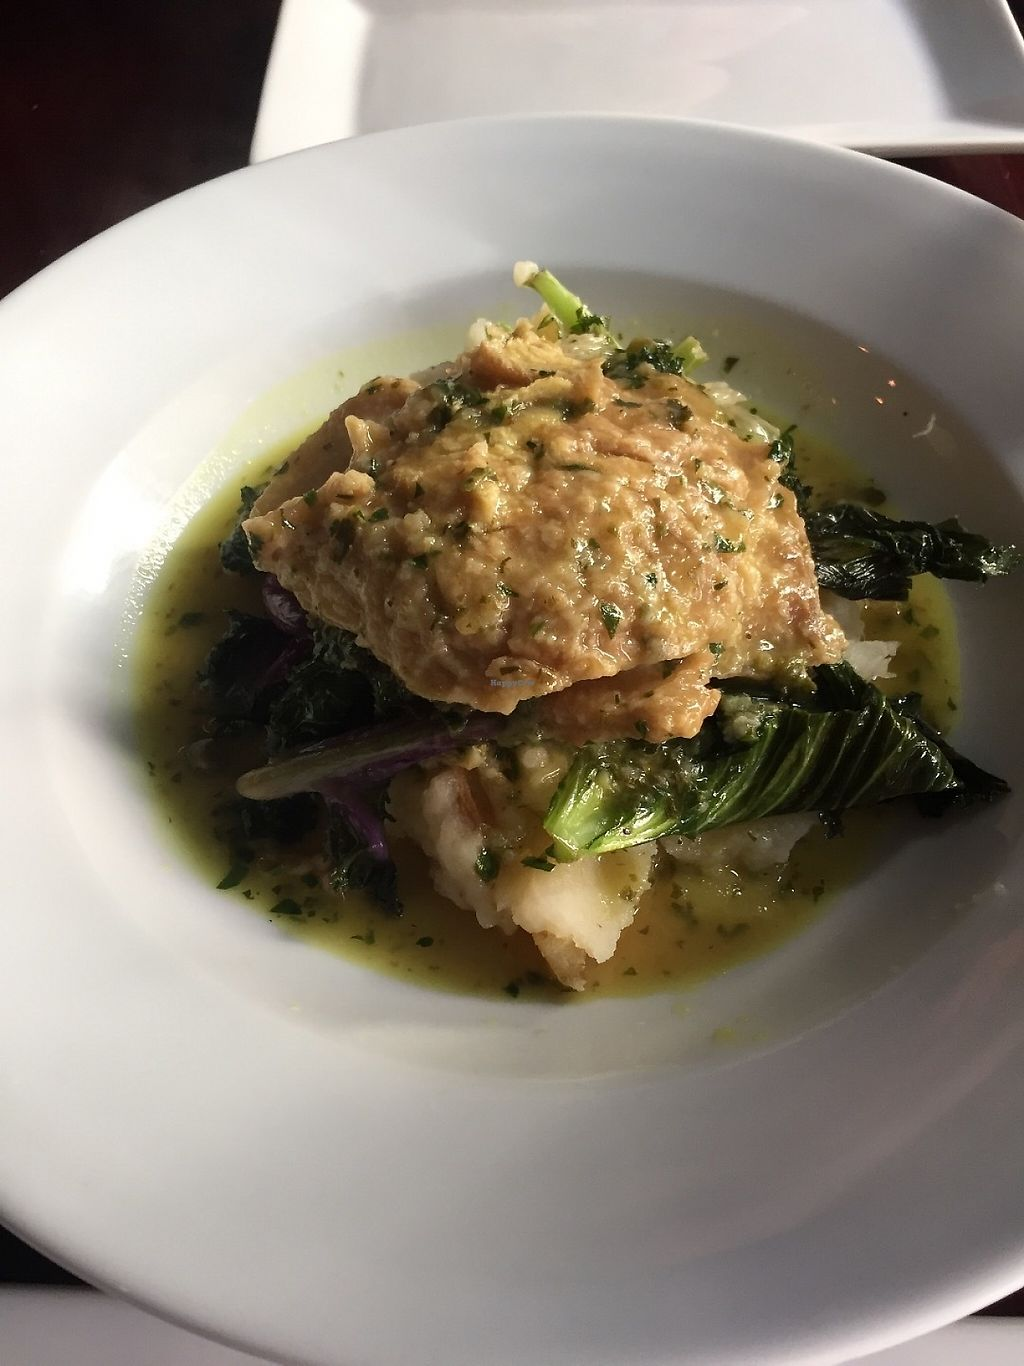 """Photo of Blossom Restaurant  by <a href=""""/members/profile/KaitlynnGill"""">KaitlynnGill</a> <br/>Sietan piccata  <br/> May 1, 2017  - <a href='/contact/abuse/image/6097/254762'>Report</a>"""